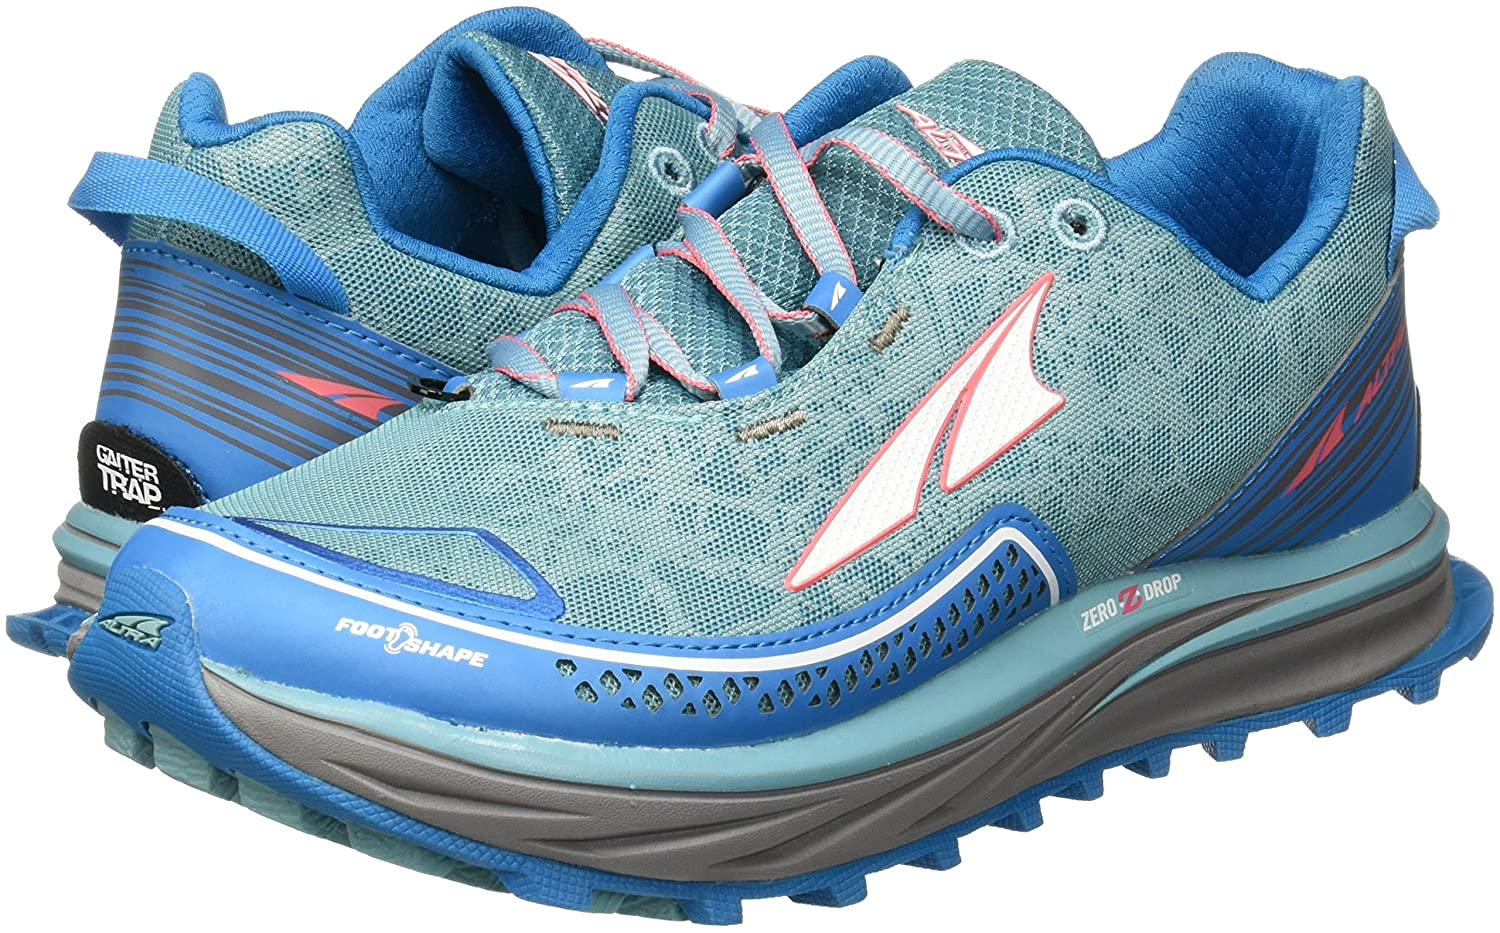 Altra Timp Trail Running Shoes - US|Blue Women's B01MU35C44 11 B(M) US|Blue - 1fd0c1